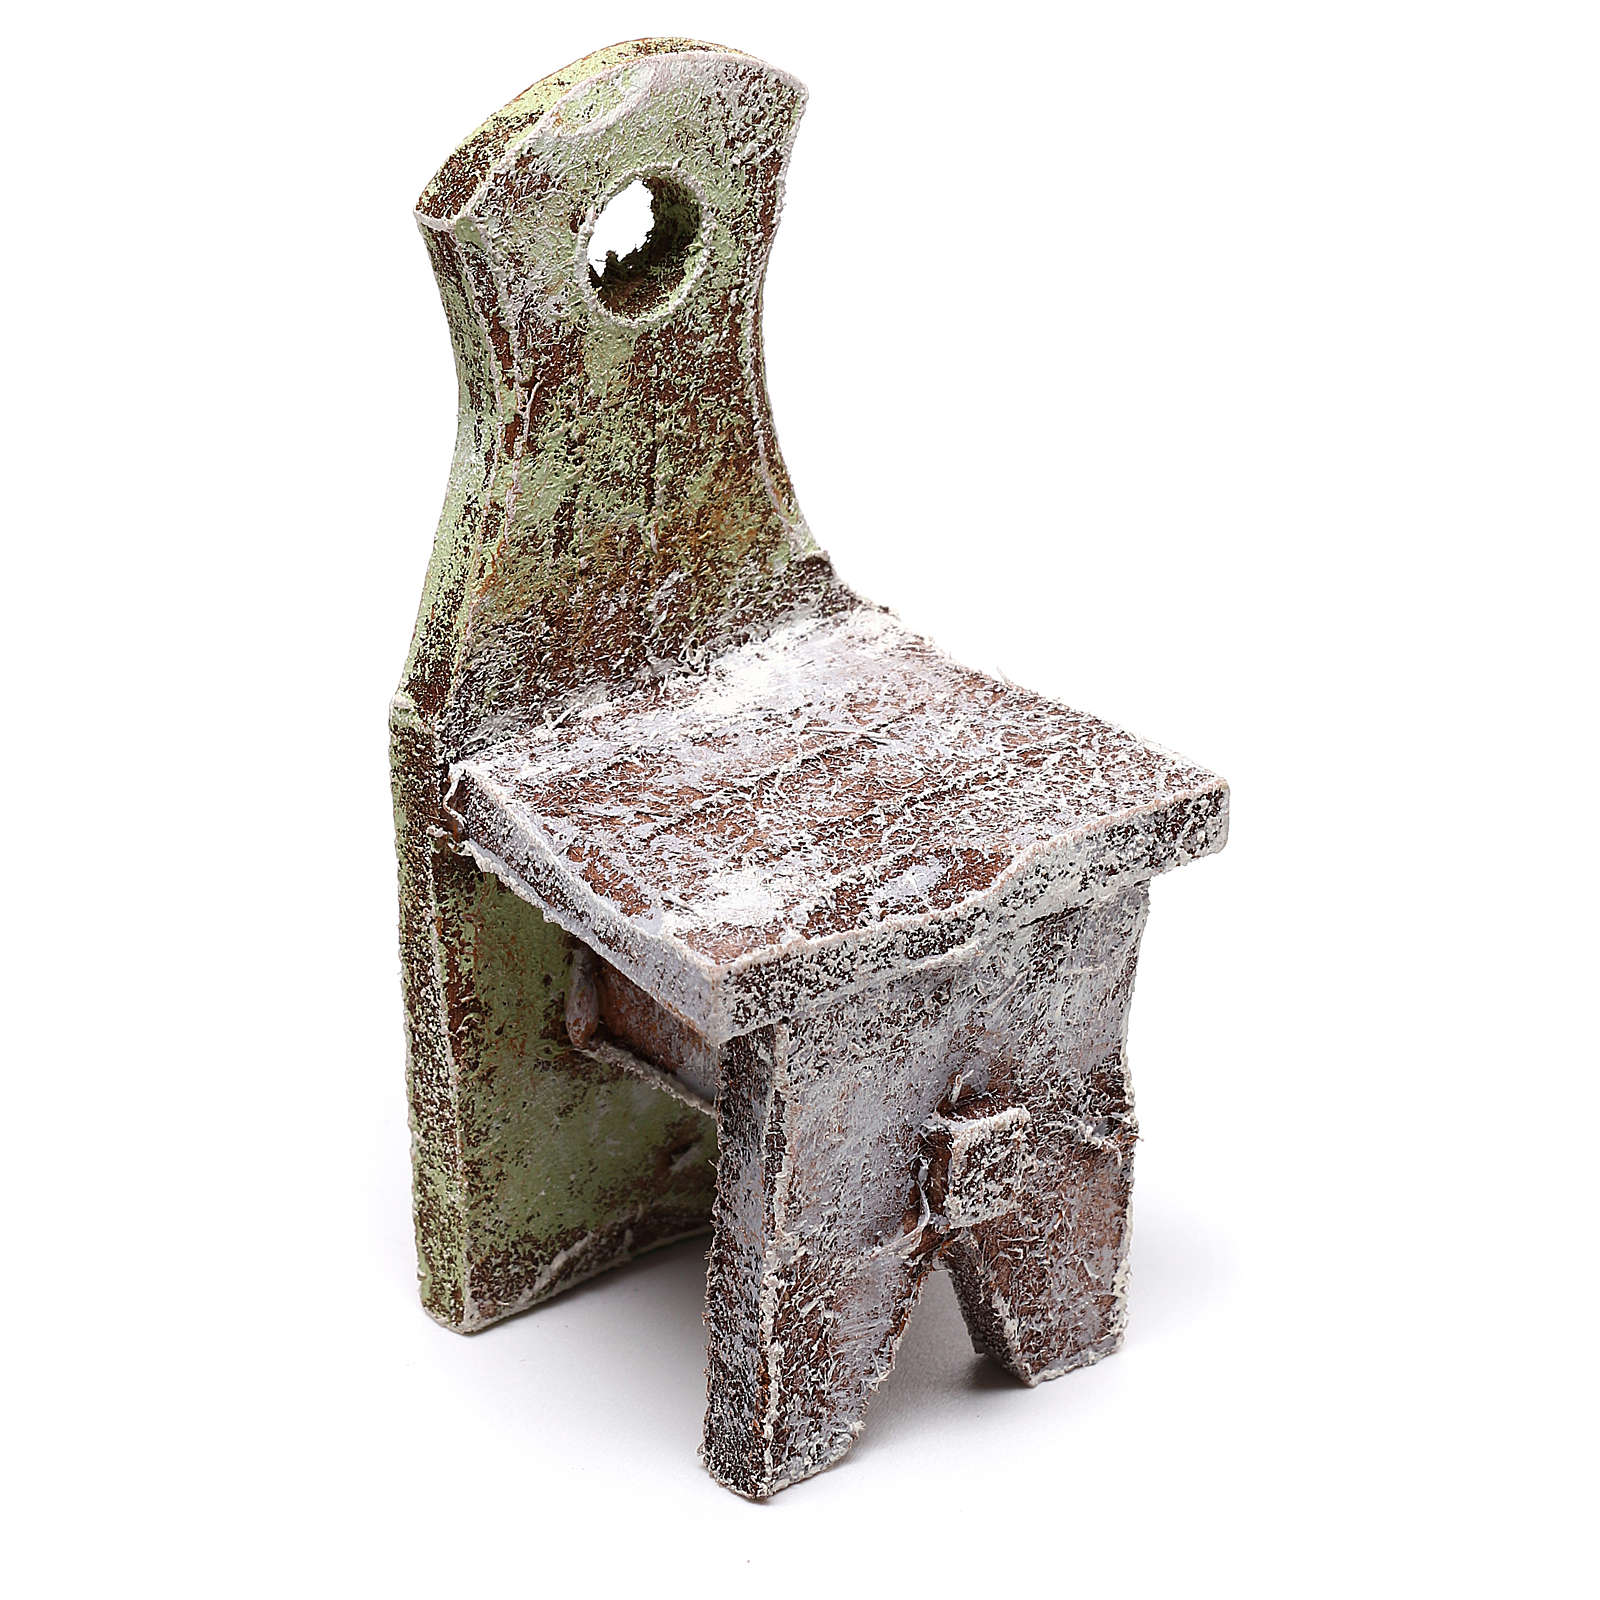 Chair 5x5x5 cm for Nativity scene of 12 cm 4